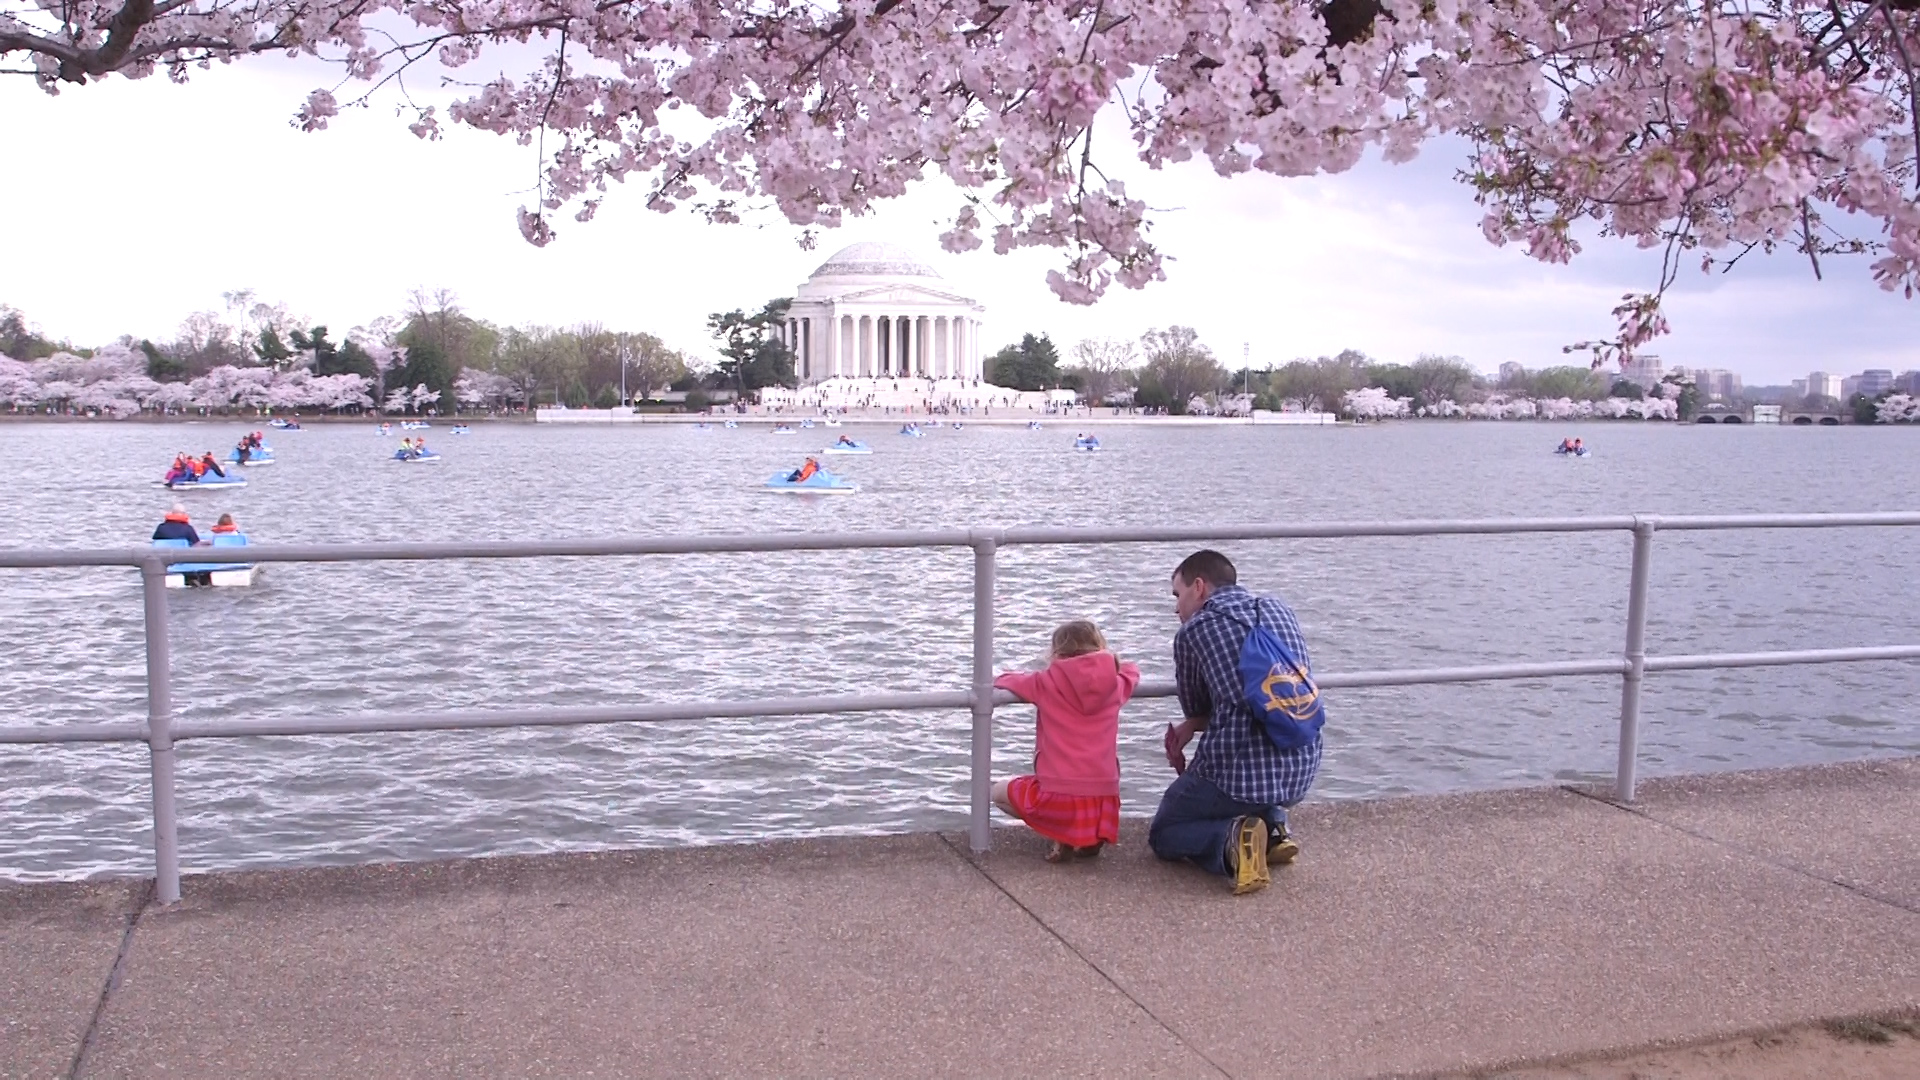 'Blink twice' and they'll be gone: What the cherry blossoms can teach us about the nature of life